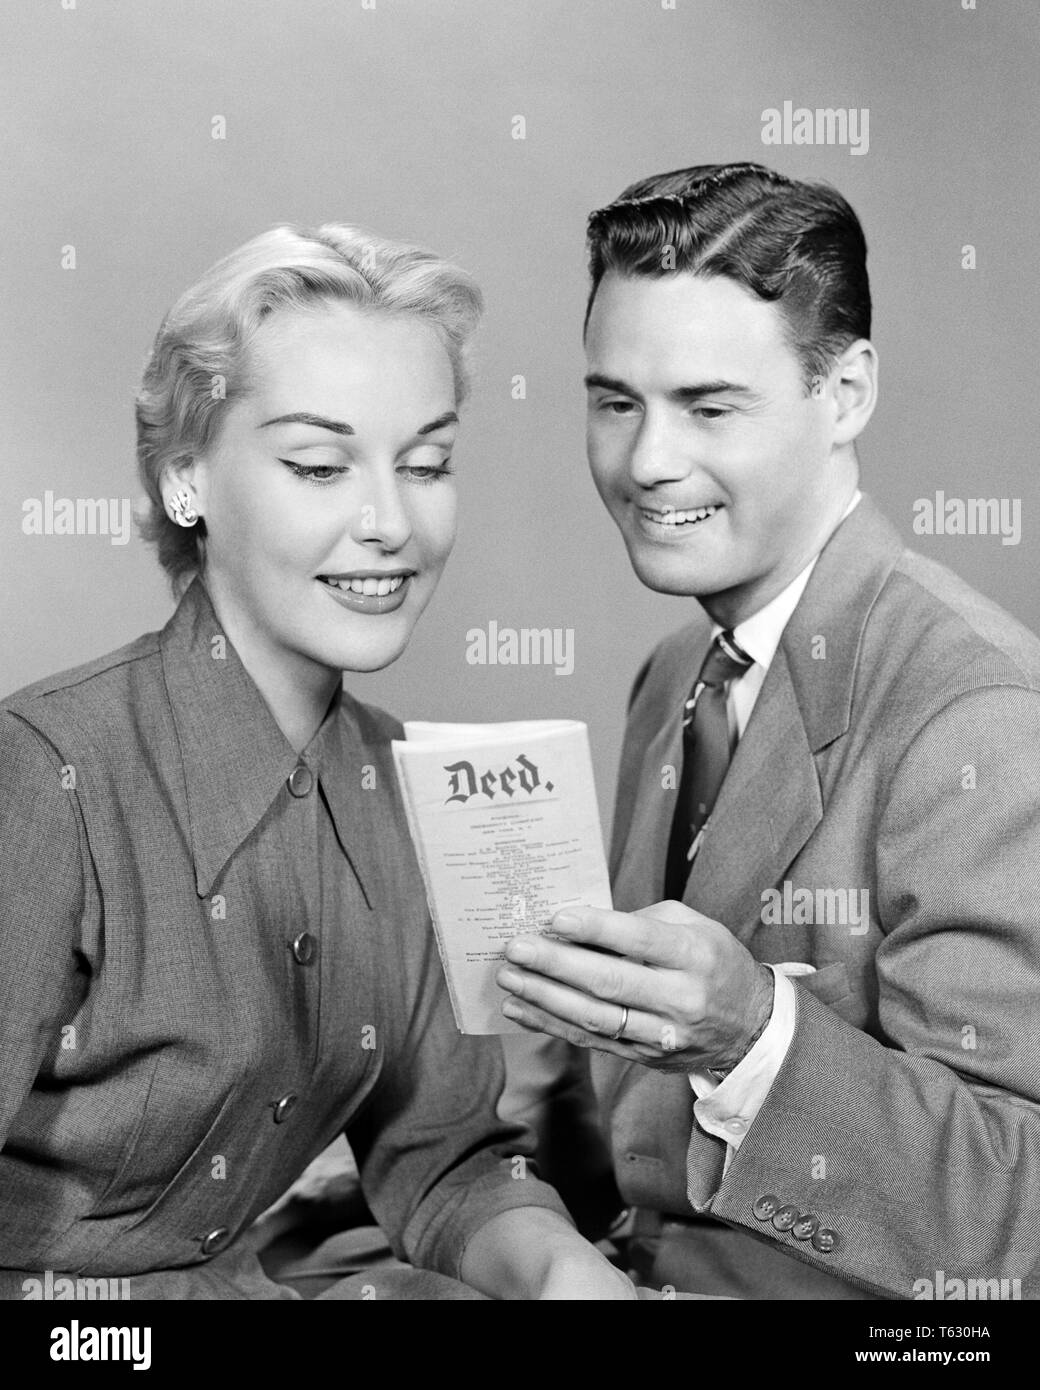 1950s BRUNETTE MAN AND BLONDE WOMAN SMILING TOGETHER LOOKING AT THE DEED TO THEIR PROPERTY - s1851 HAR001 HARS SPOUSE HUSBANDS HOME LIFE COPY SPACE HALF-LENGTH LADIES PERSONS INSPIRATION MALES FOLDER B&W PARTNER BRUNETTE FREEDOM GOALS SUCCESS DREAMS HAPPINESS ADVENTURE BROCHURE PROPERTY THEIR STRATEGY AND EXCITEMENT PRIDE THE TO CONCEPTUAL INVESTMENT STYLISH OWNERS LOOKING AT DEED MID-ADULT MID-ADULT MAN MID-ADULT WOMAN OWNERSHIP TOGETHERNESS WIVES BLACK AND WHITE CAUCASIAN ETHNICITY HAR001 OLD FASHIONED - Stock Image